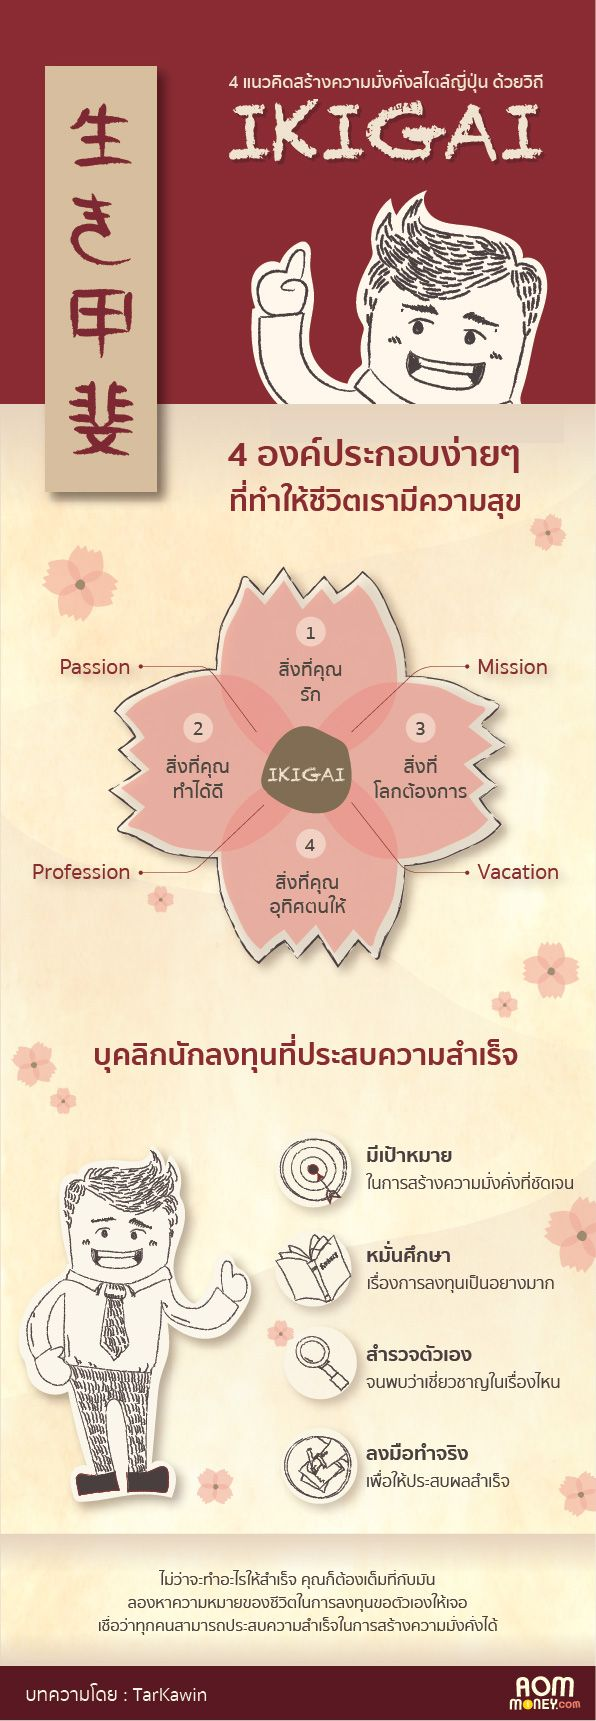 my ikigai in life essay Ikigai: the japanese concept of finding purpose in life  i have dedicated time to my health and one of the activities that give ikigai to my life: .